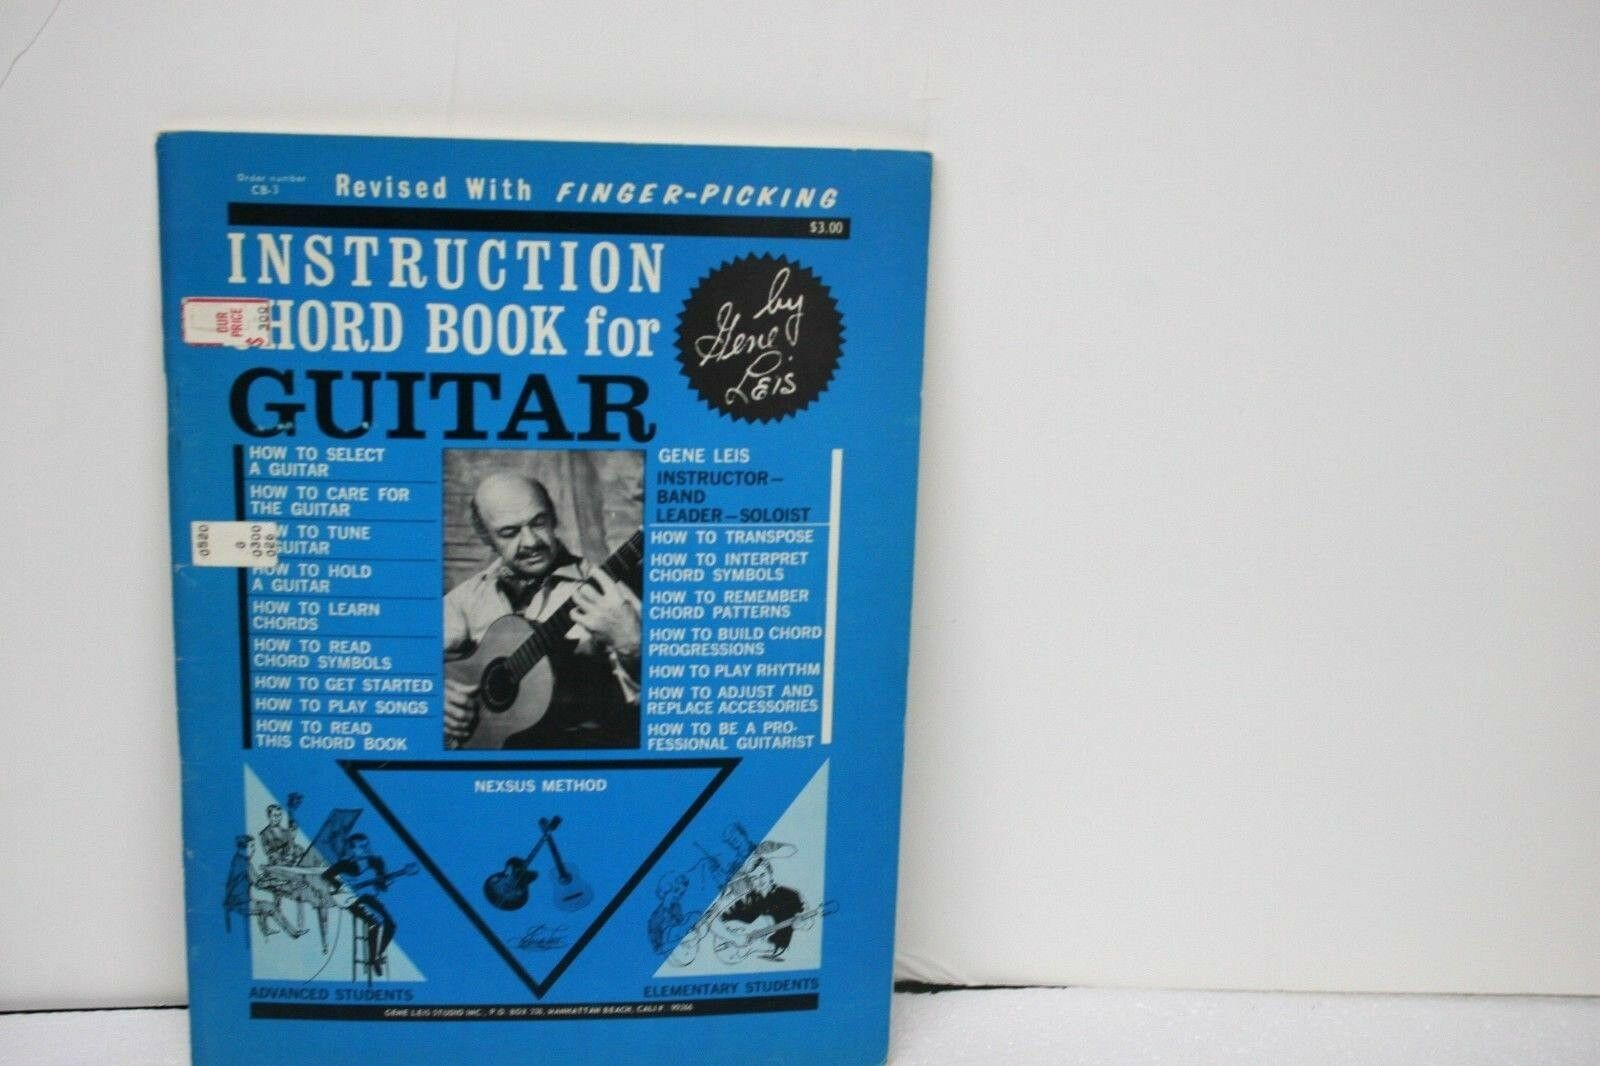 Gene Leis Instruction Chord Book for Guitar in excellent condition 1974 CB-3